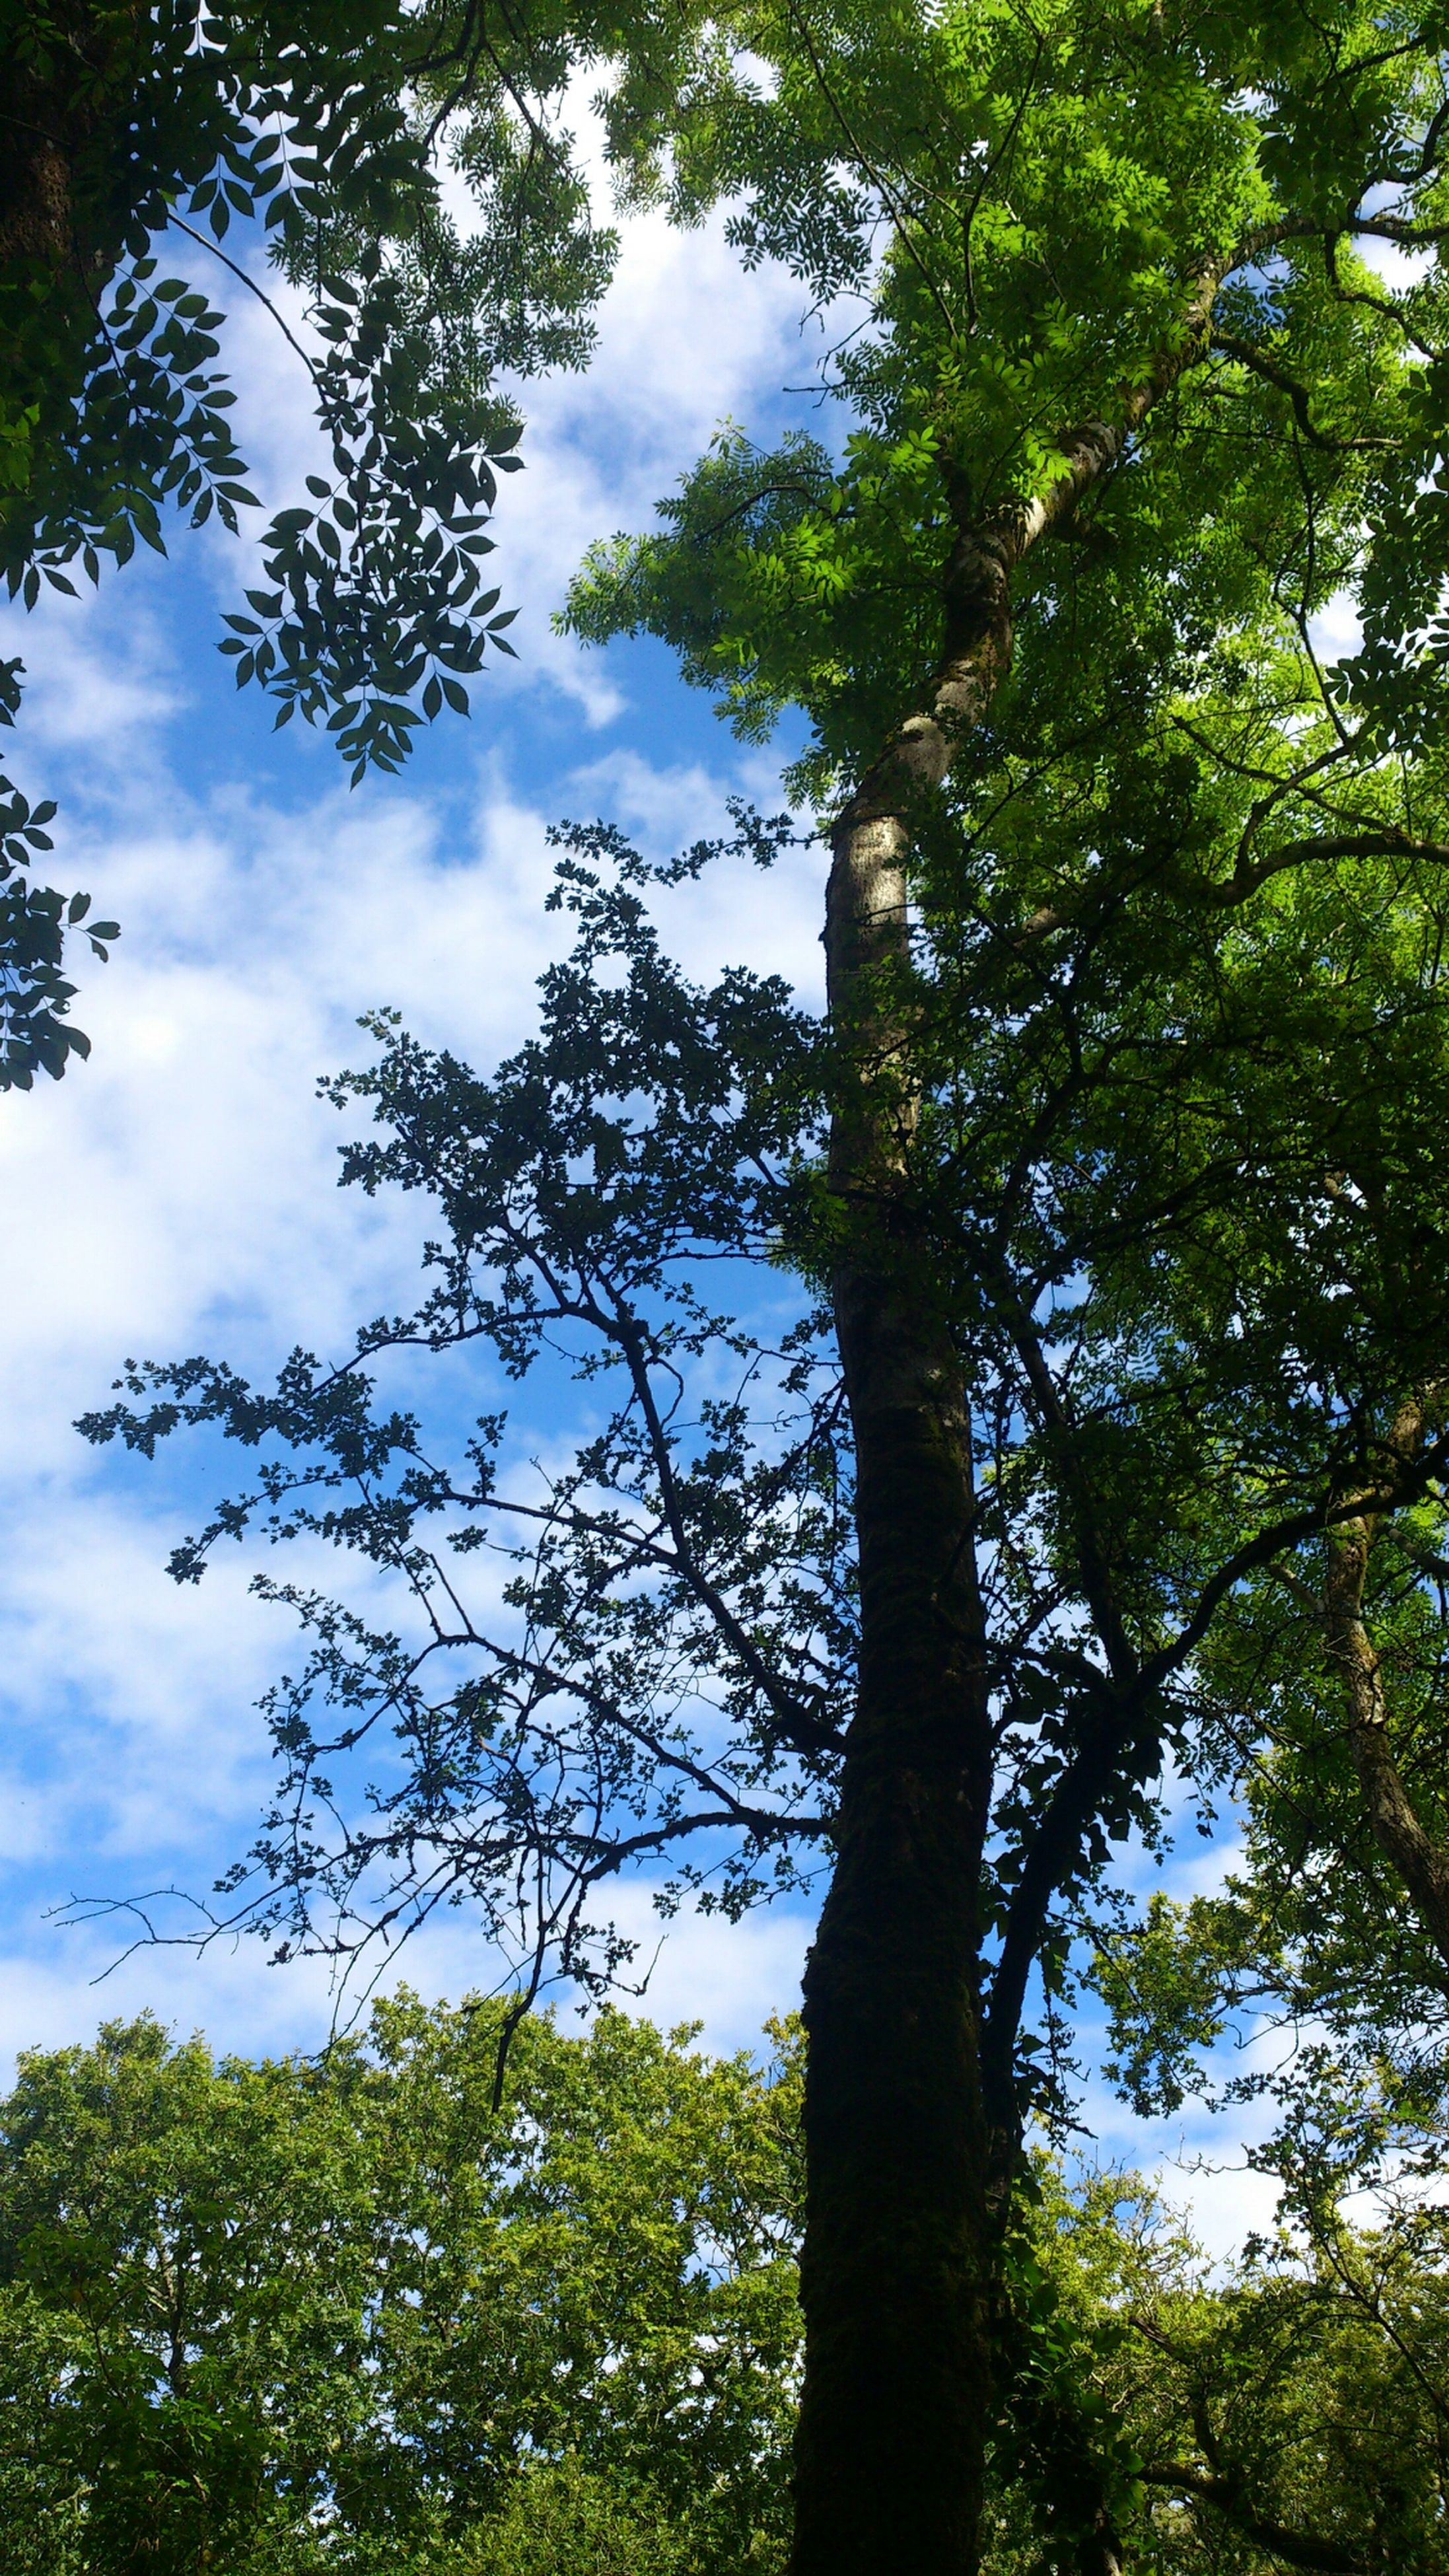 tree, low angle view, sky, growth, tranquility, green color, nature, branch, beauty in nature, tree trunk, tranquil scene, cloud - sky, scenics, cloud, forest, day, outdoors, no people, green, lush foliage